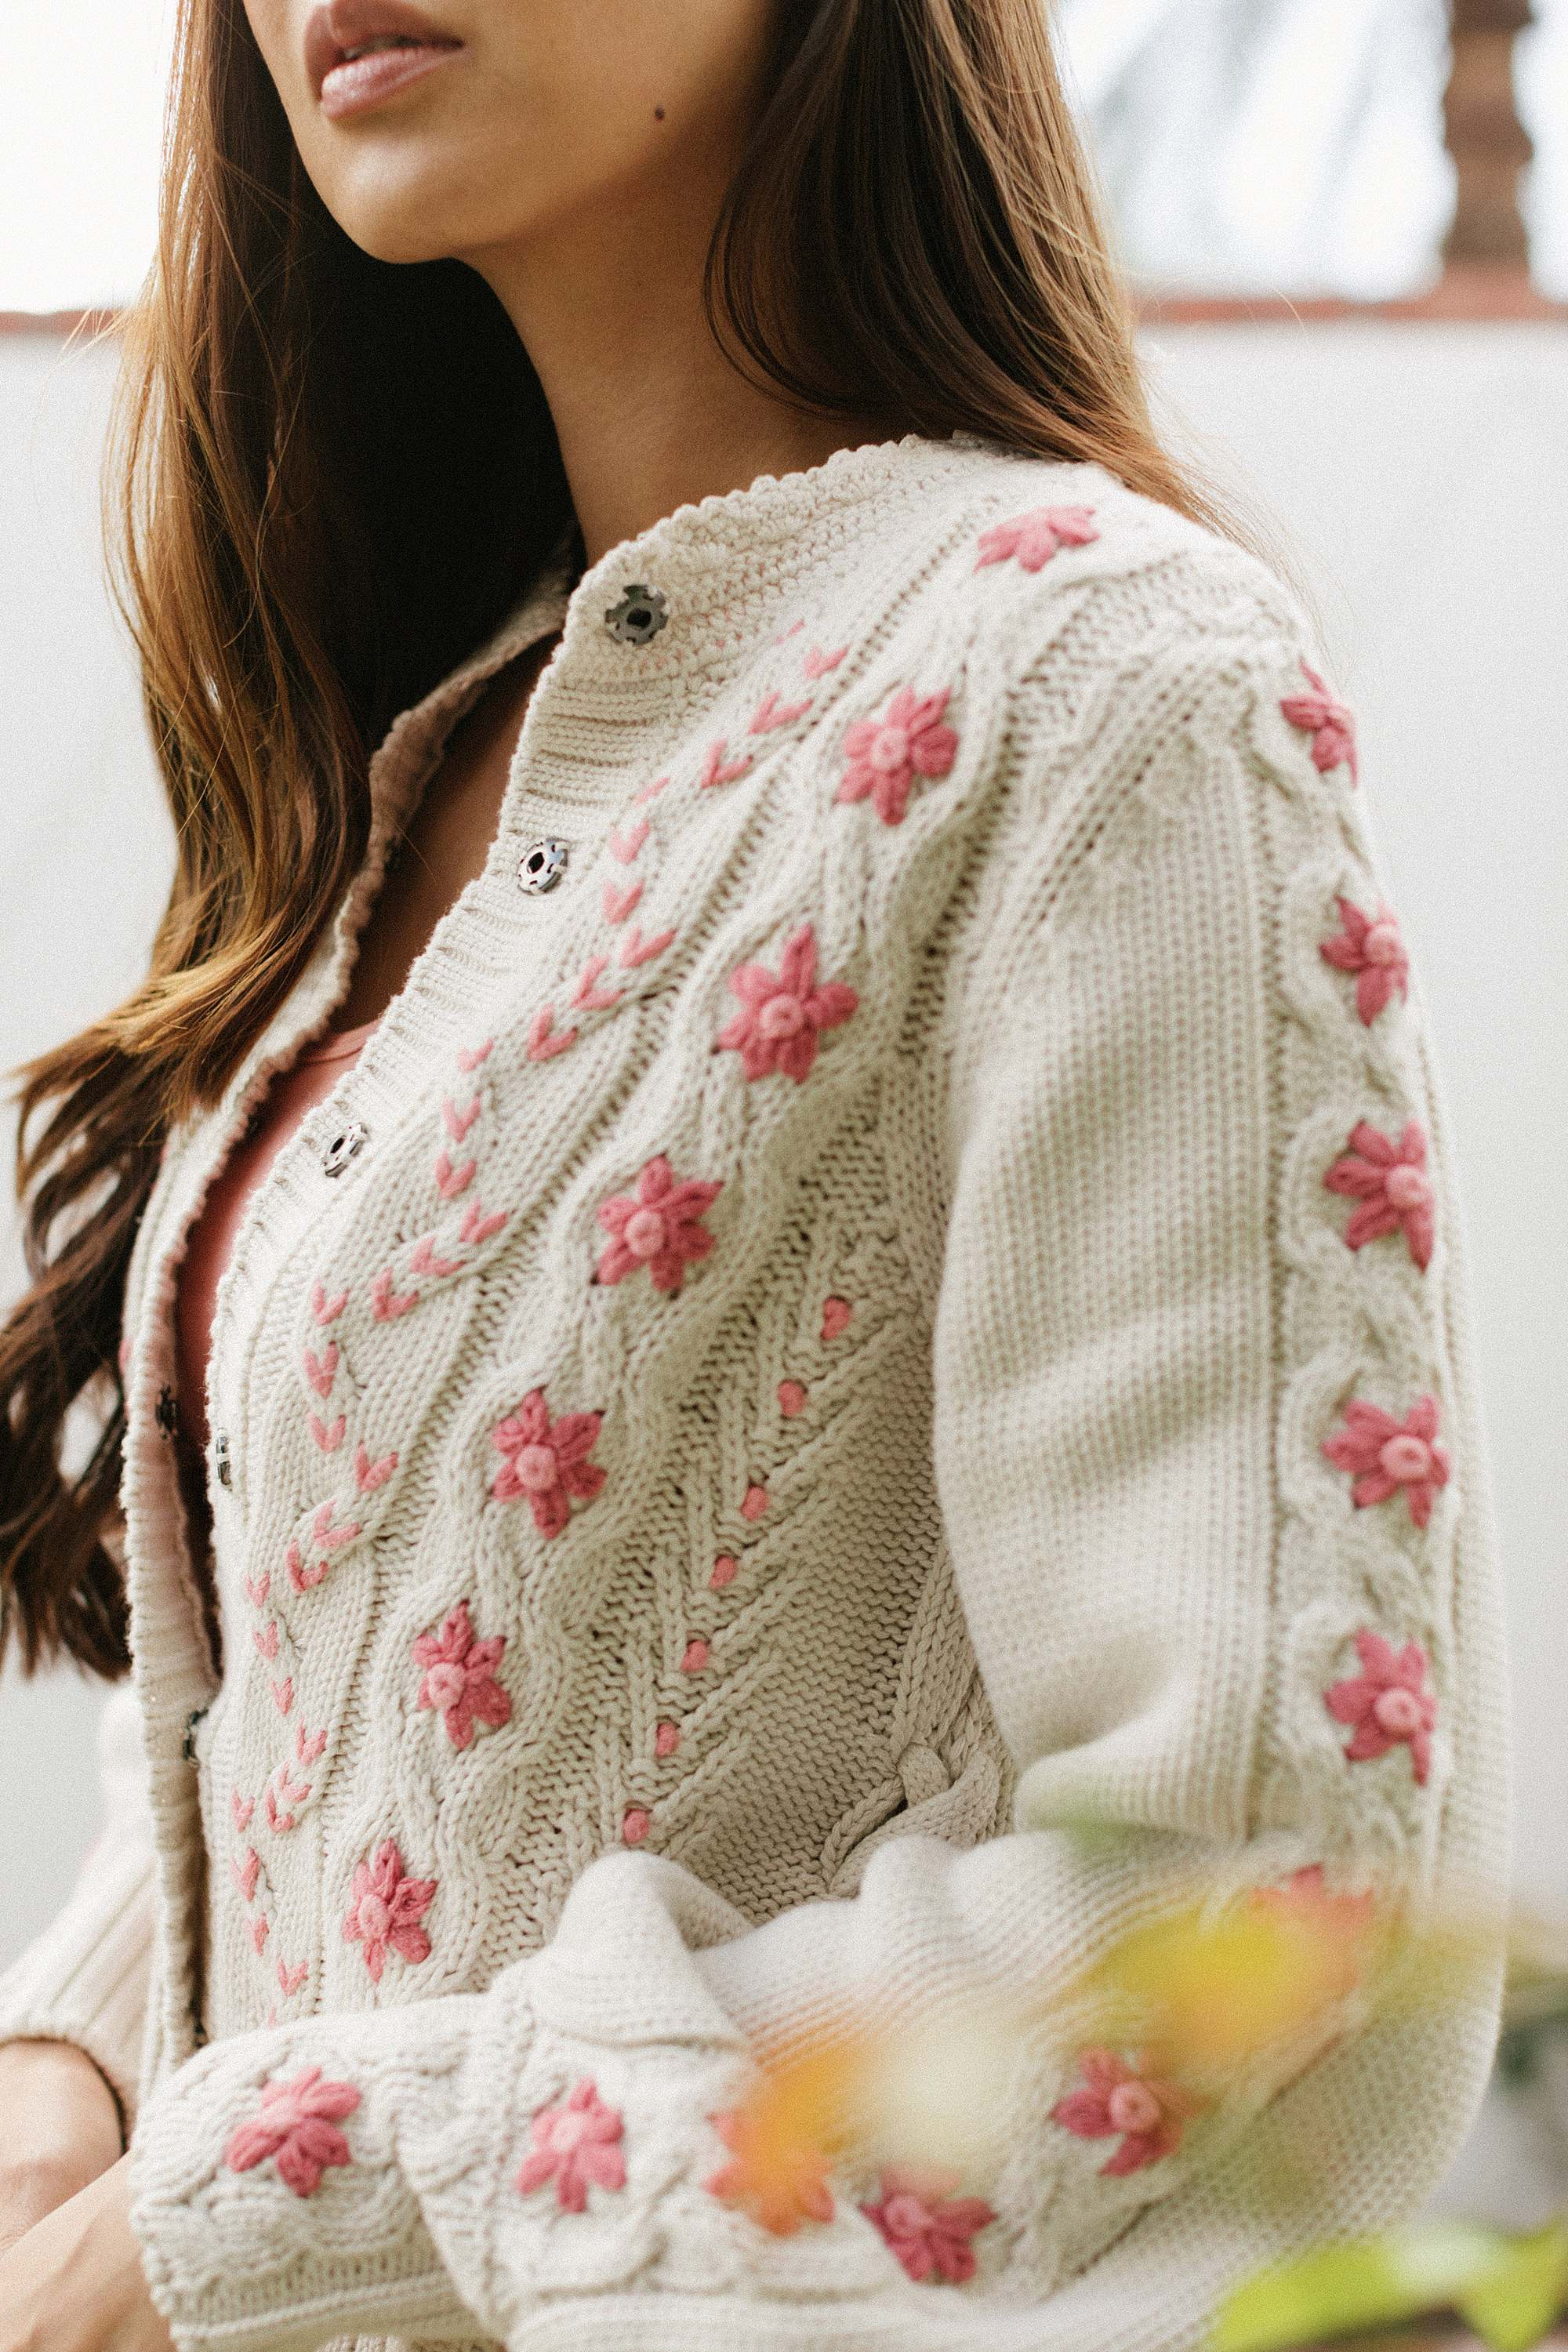 oh wow cardigan by odd Molly on lifestyle garden blogger Diana Elizabeth // see her new home garden are raised brick beds